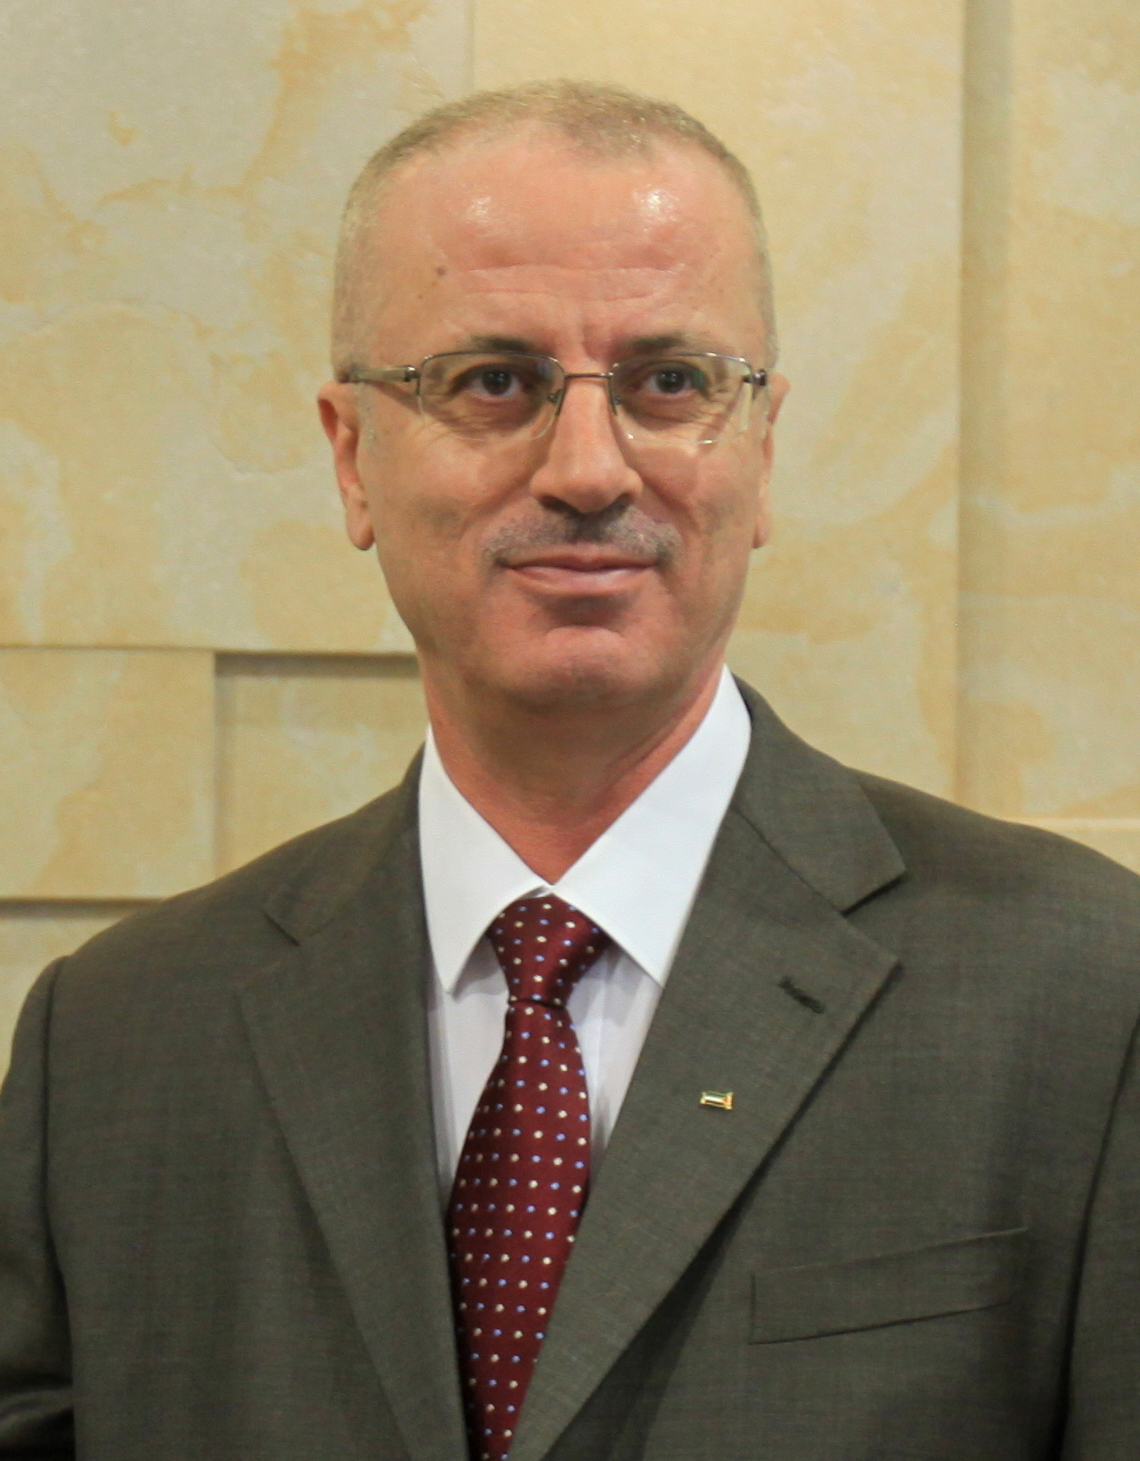 https://upload.wikimedia.org/wikipedia/commons/8/8e/Rami_Hamdallah_October_2013.jpg